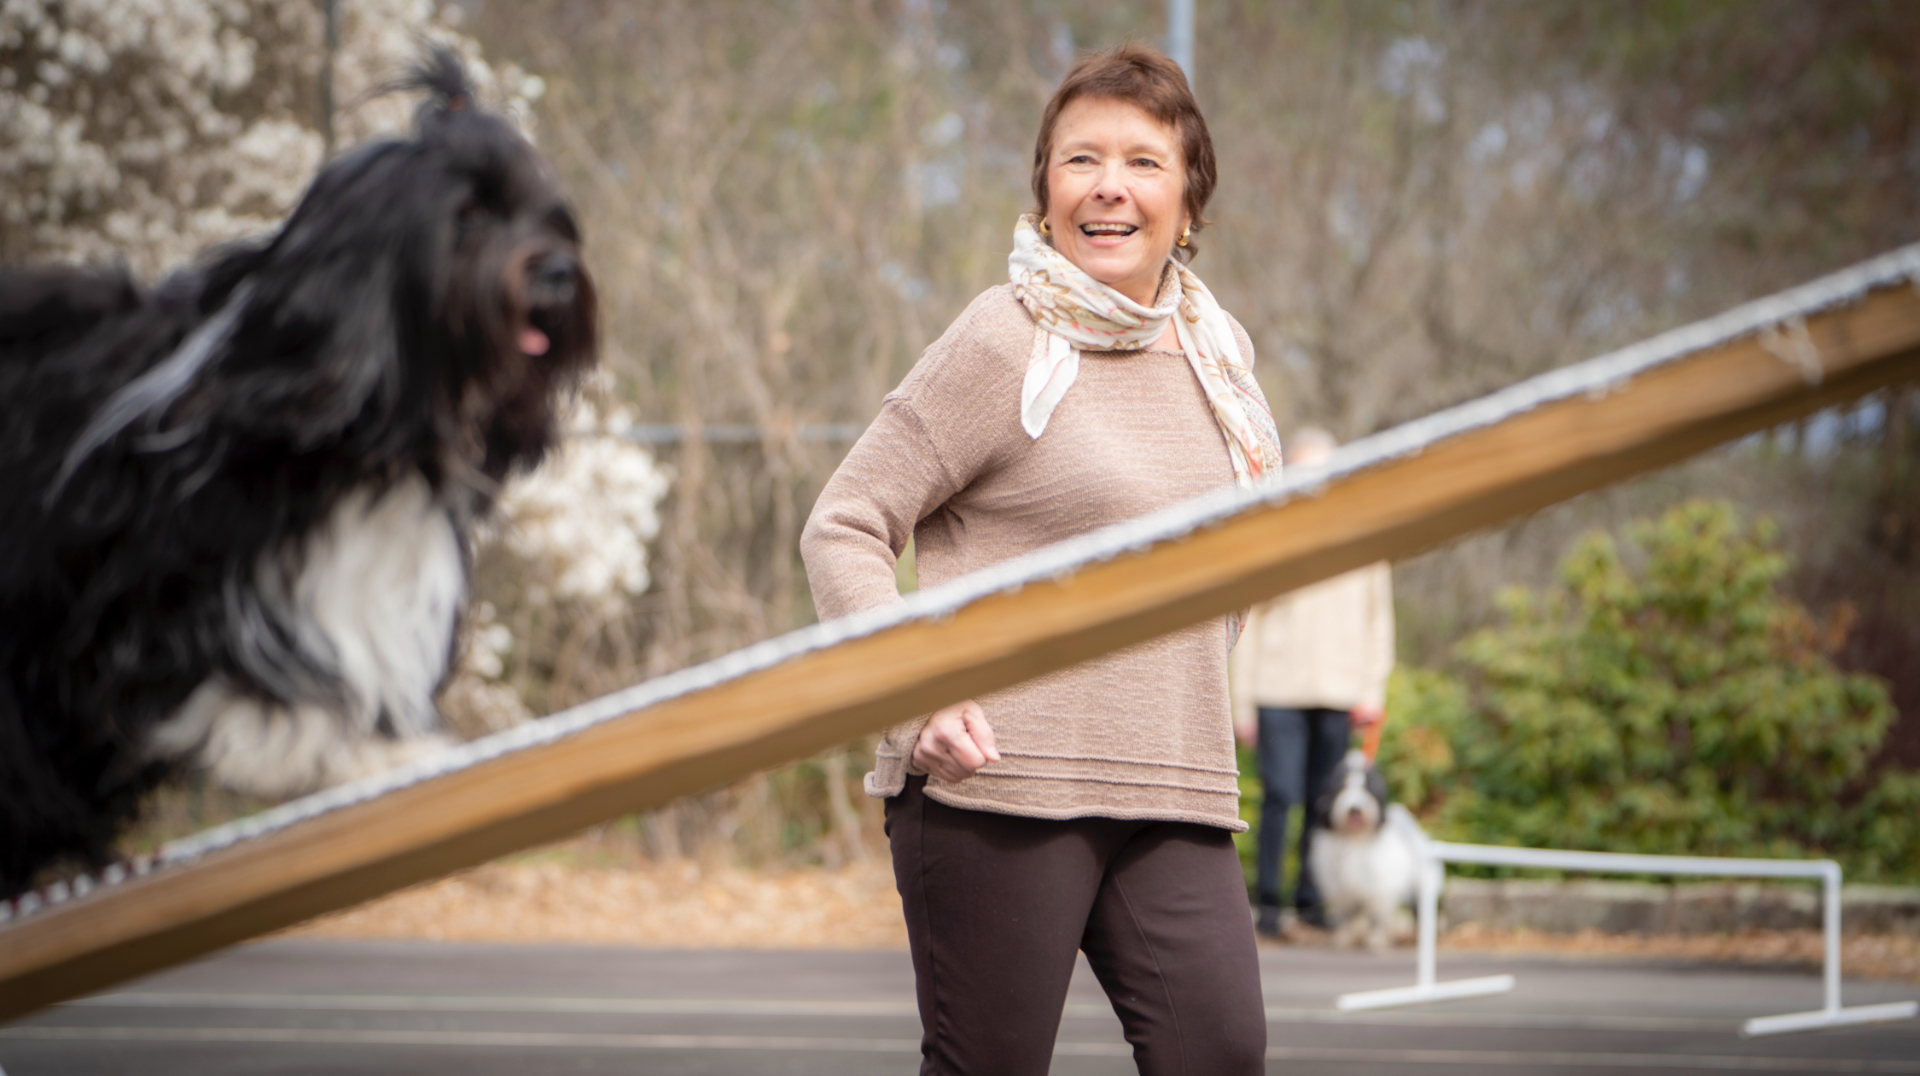 Dr. Irwin looks on proudly as she trains her dog Lucy in agility, keeping up with Lucy as she runs.